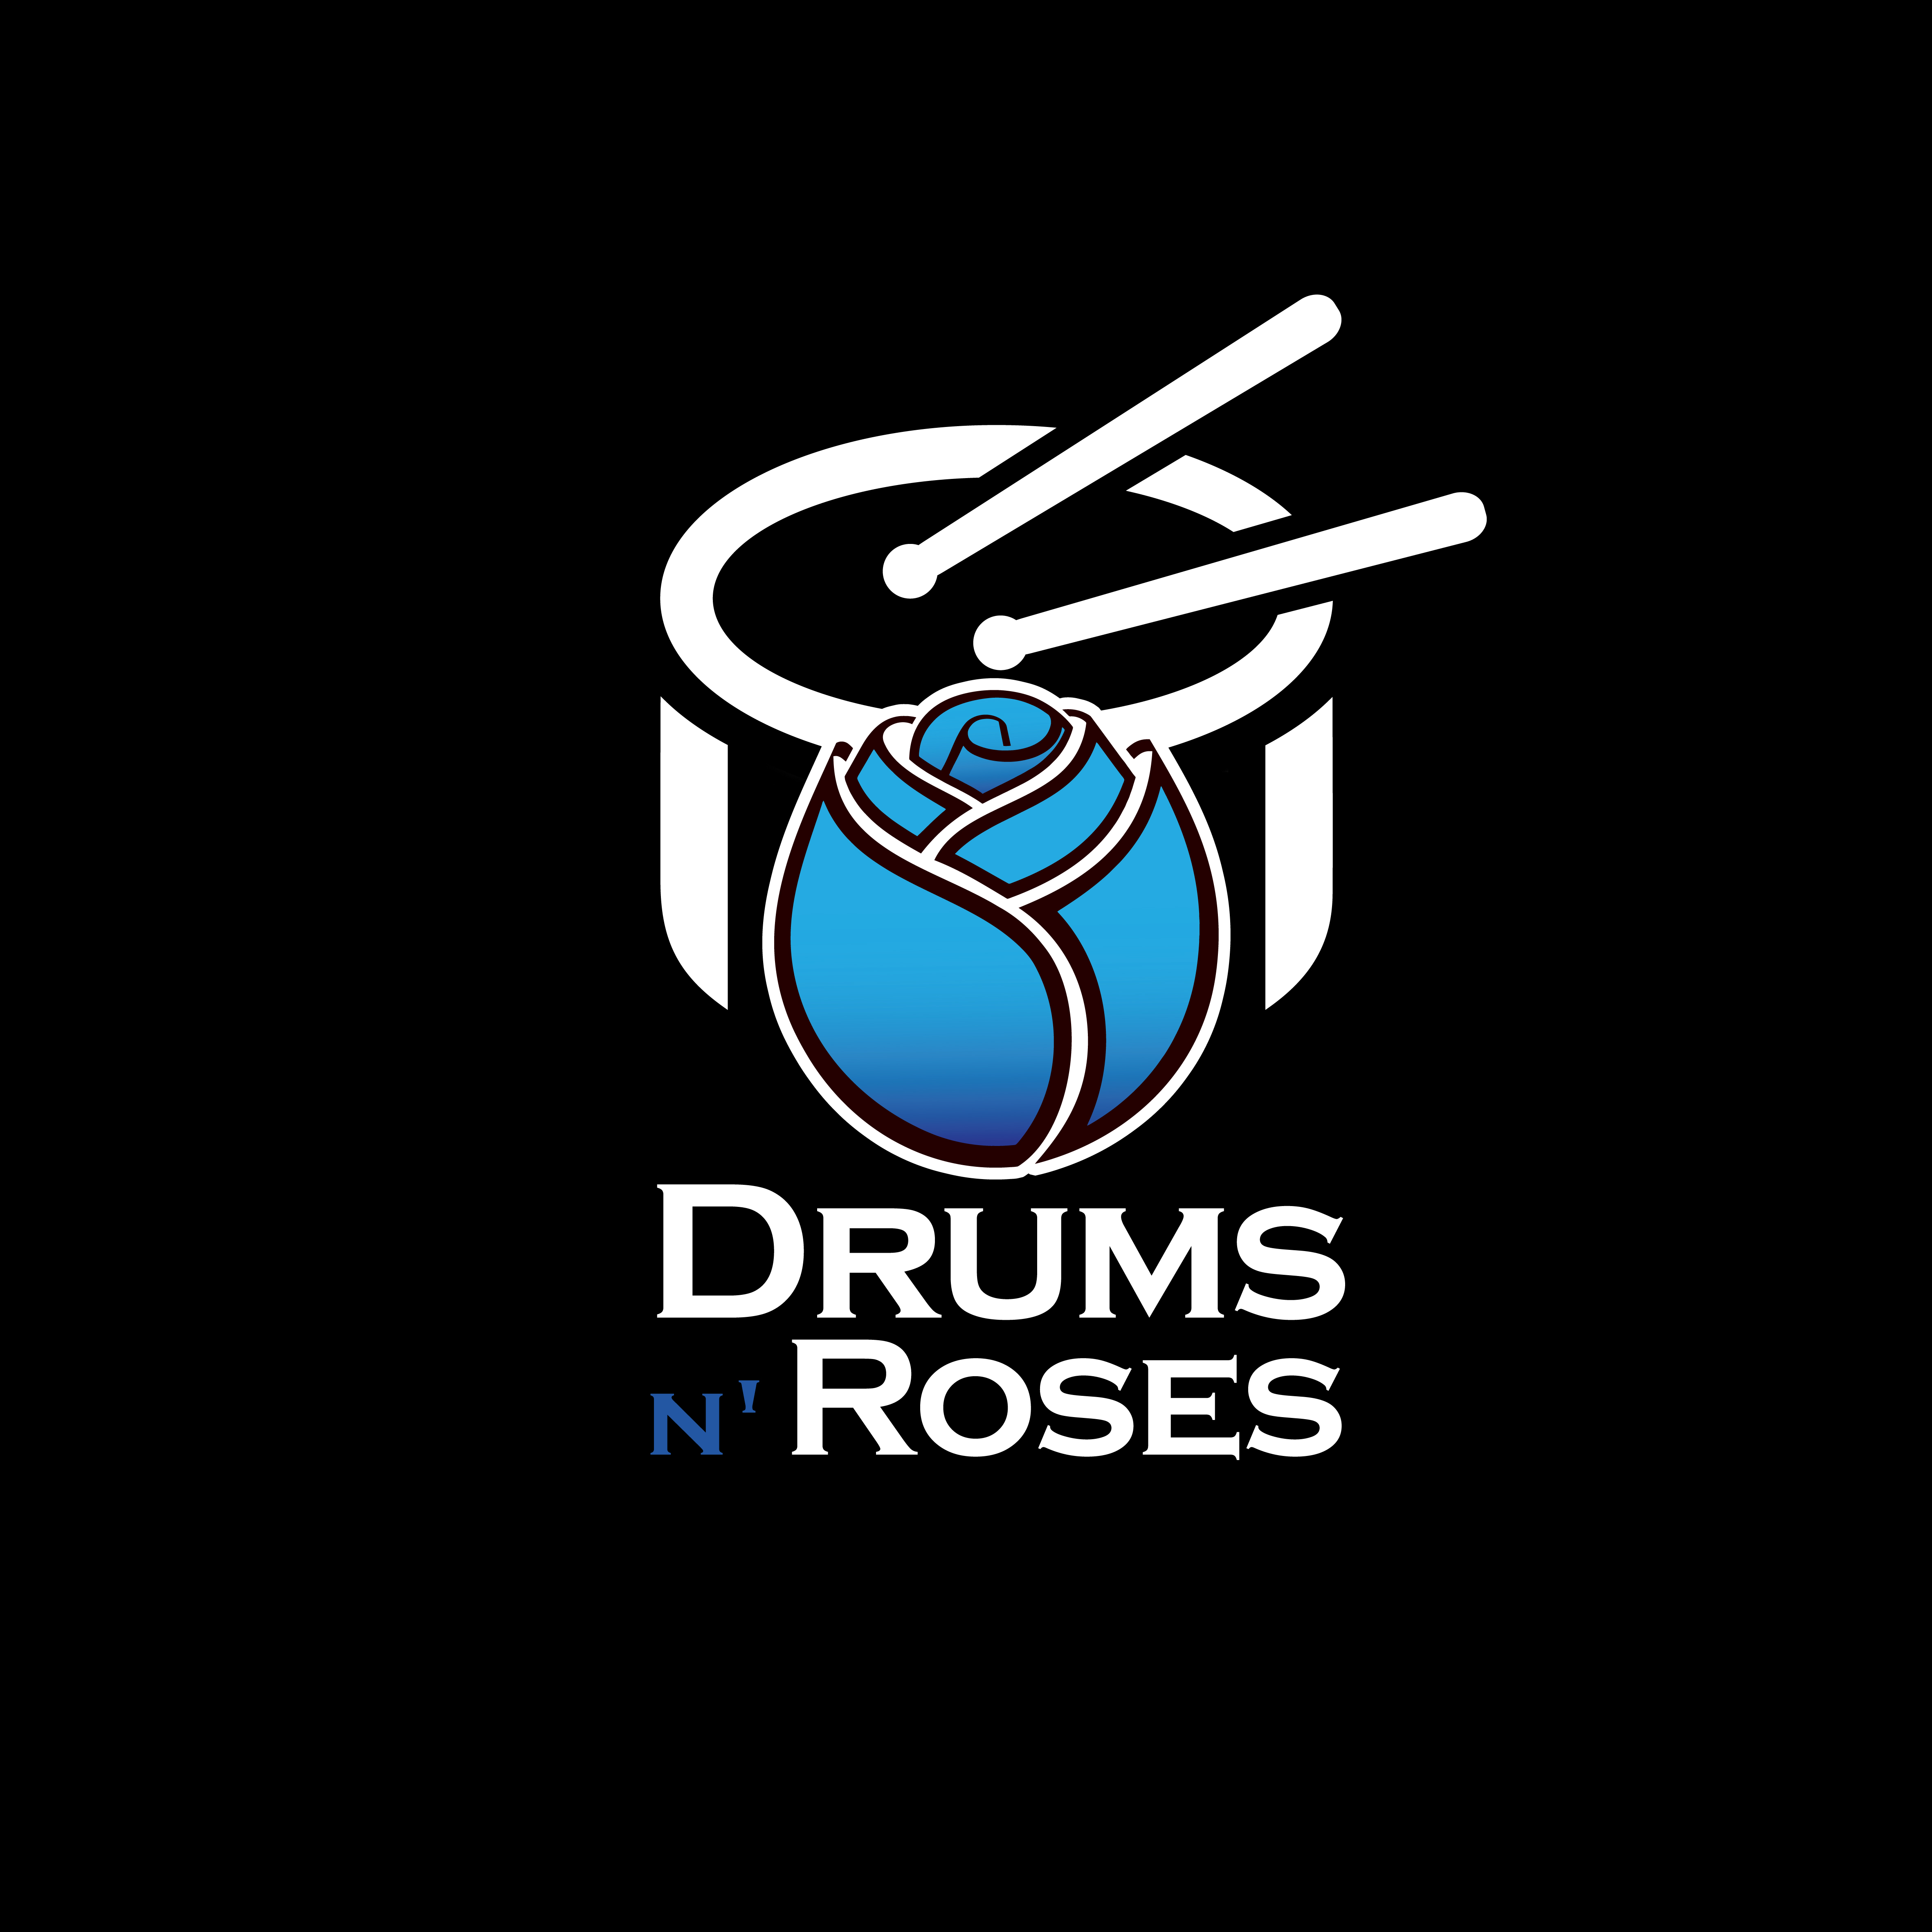 Drums N' Roses Merchandise